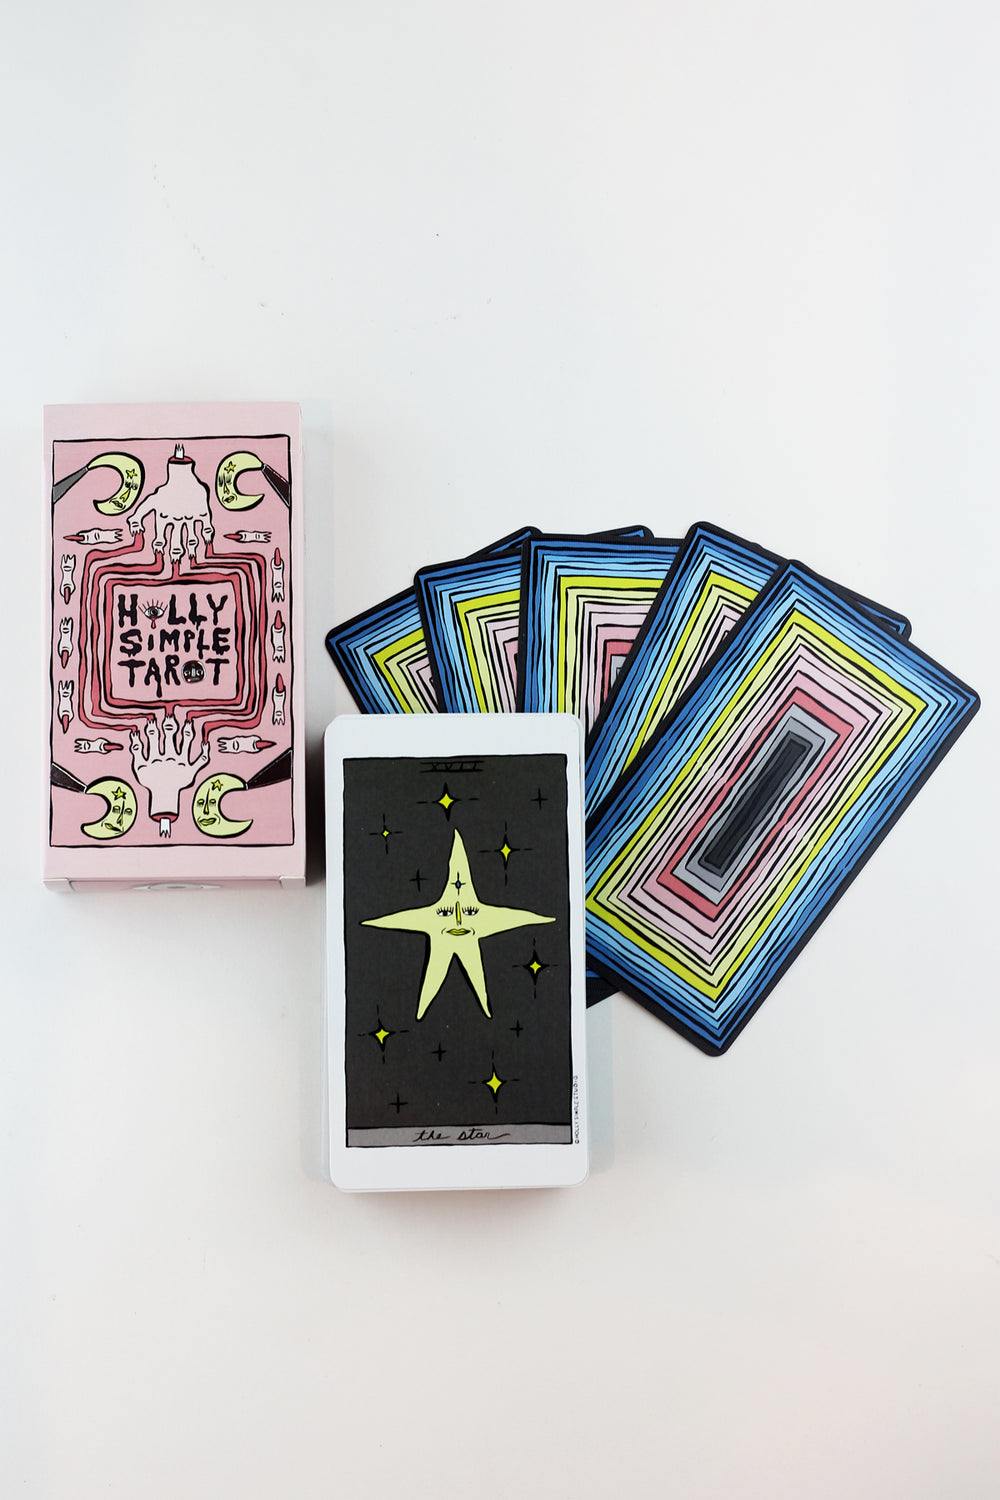 PREORDER V2! Holly Simple Tarot | 5 Year Anniversary Deck